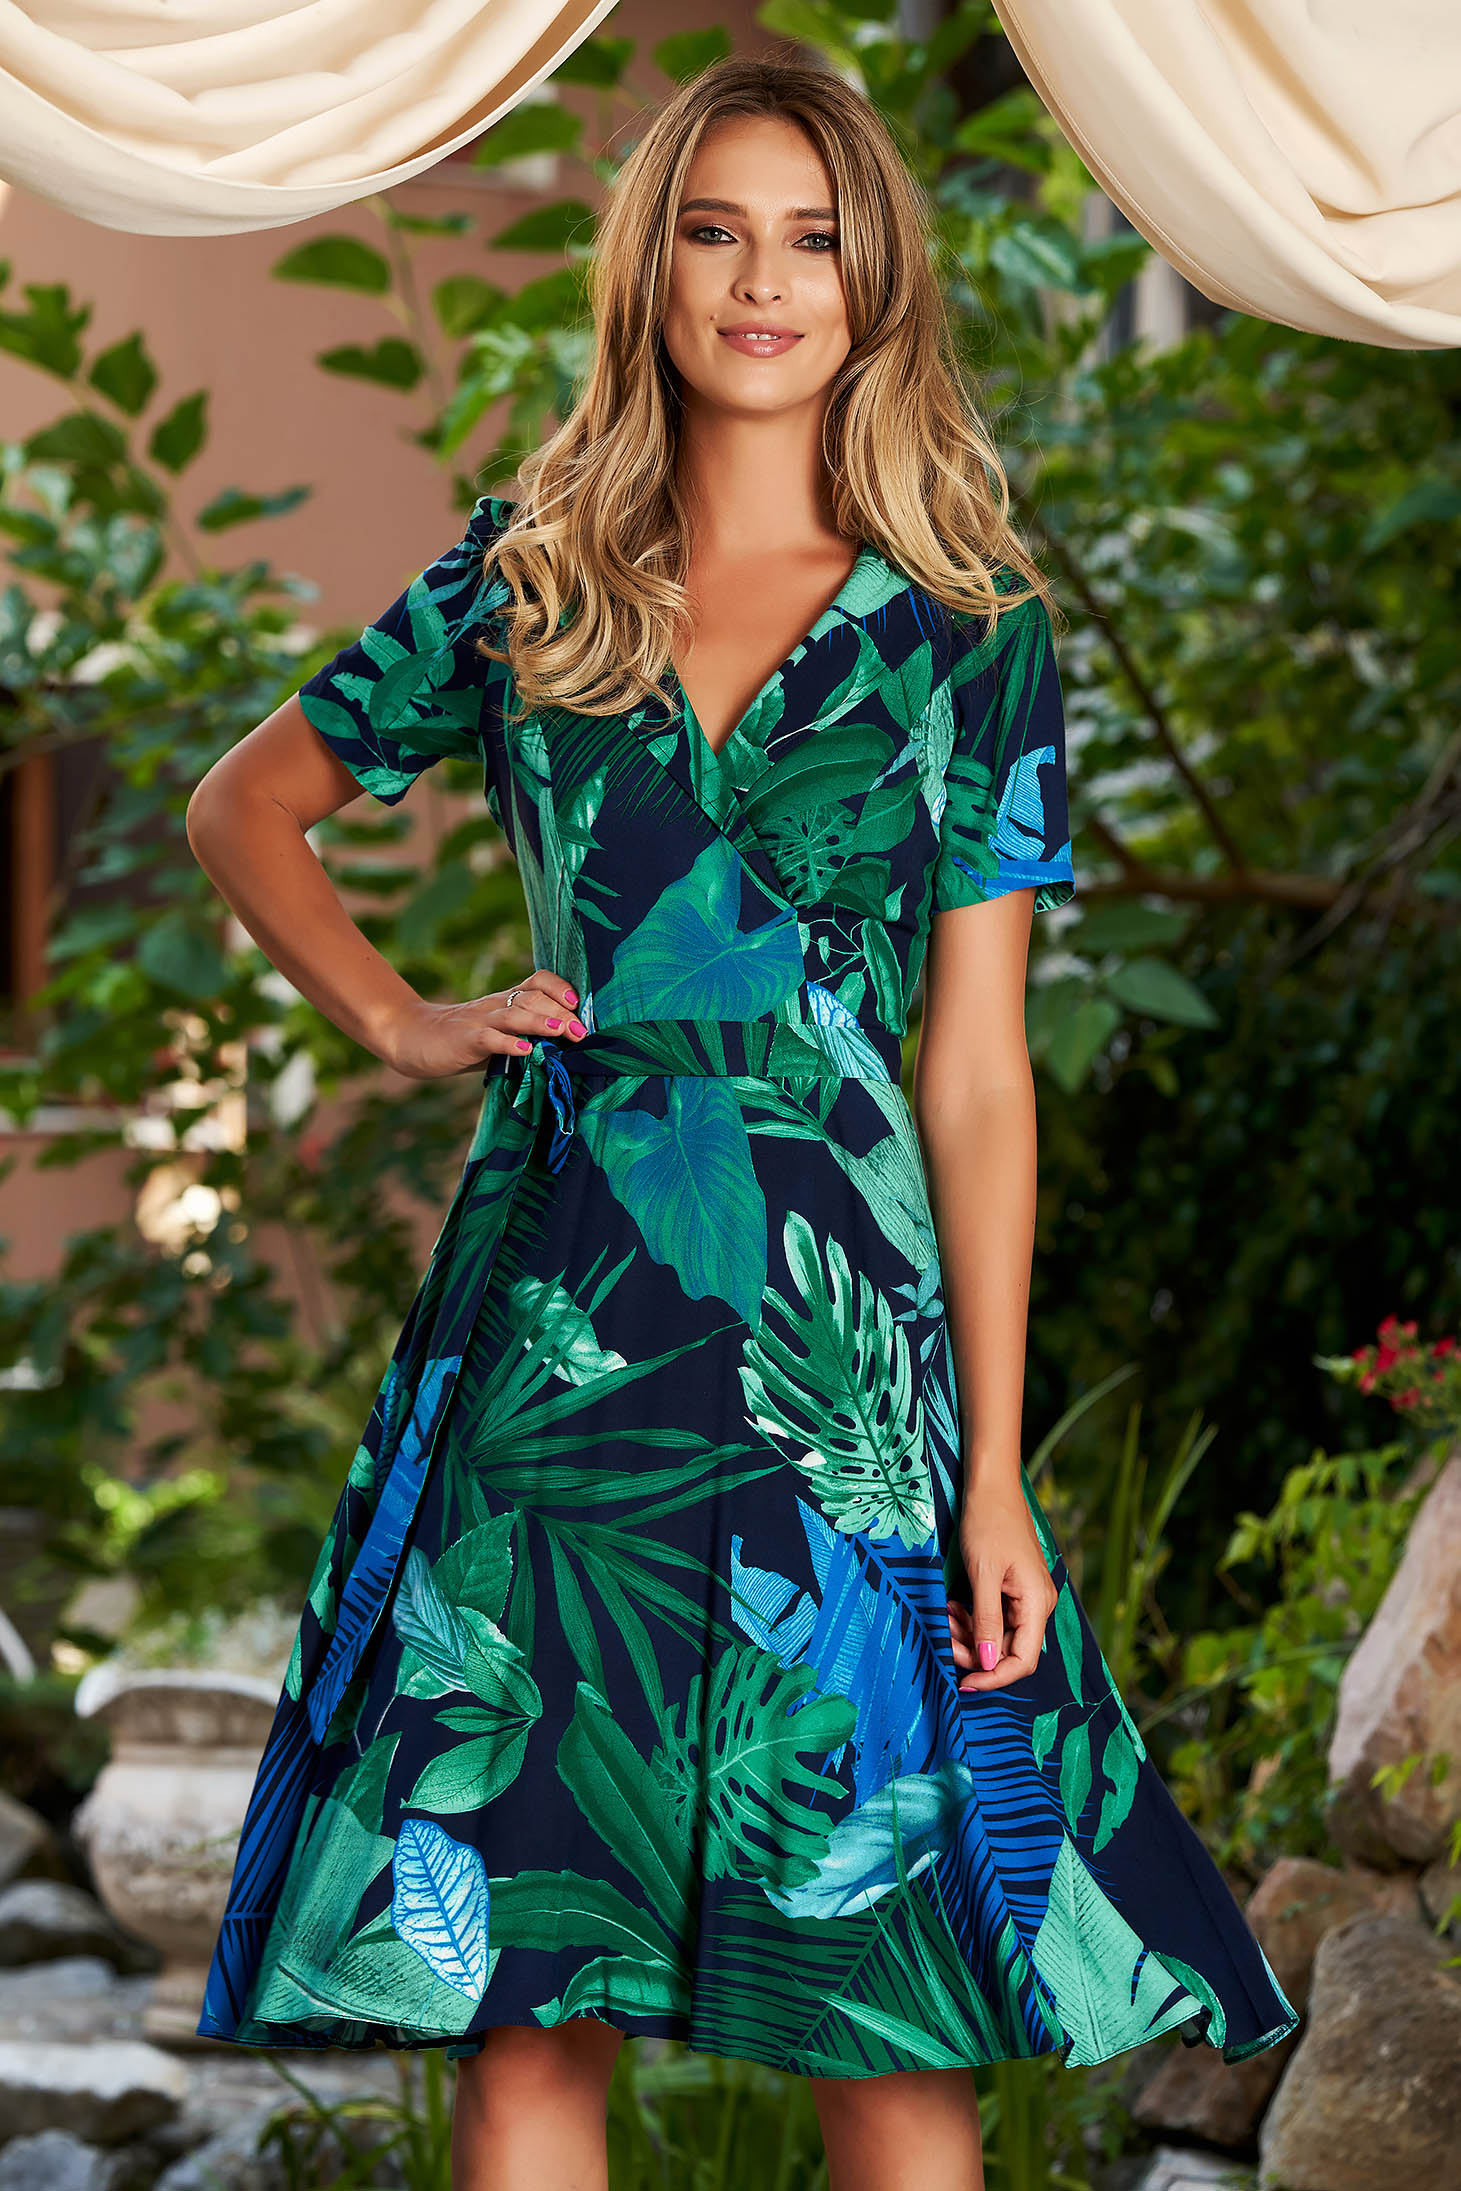 Darkblue dress daily cloche midi with v-neckline short sleeves accessorized with tied waistband